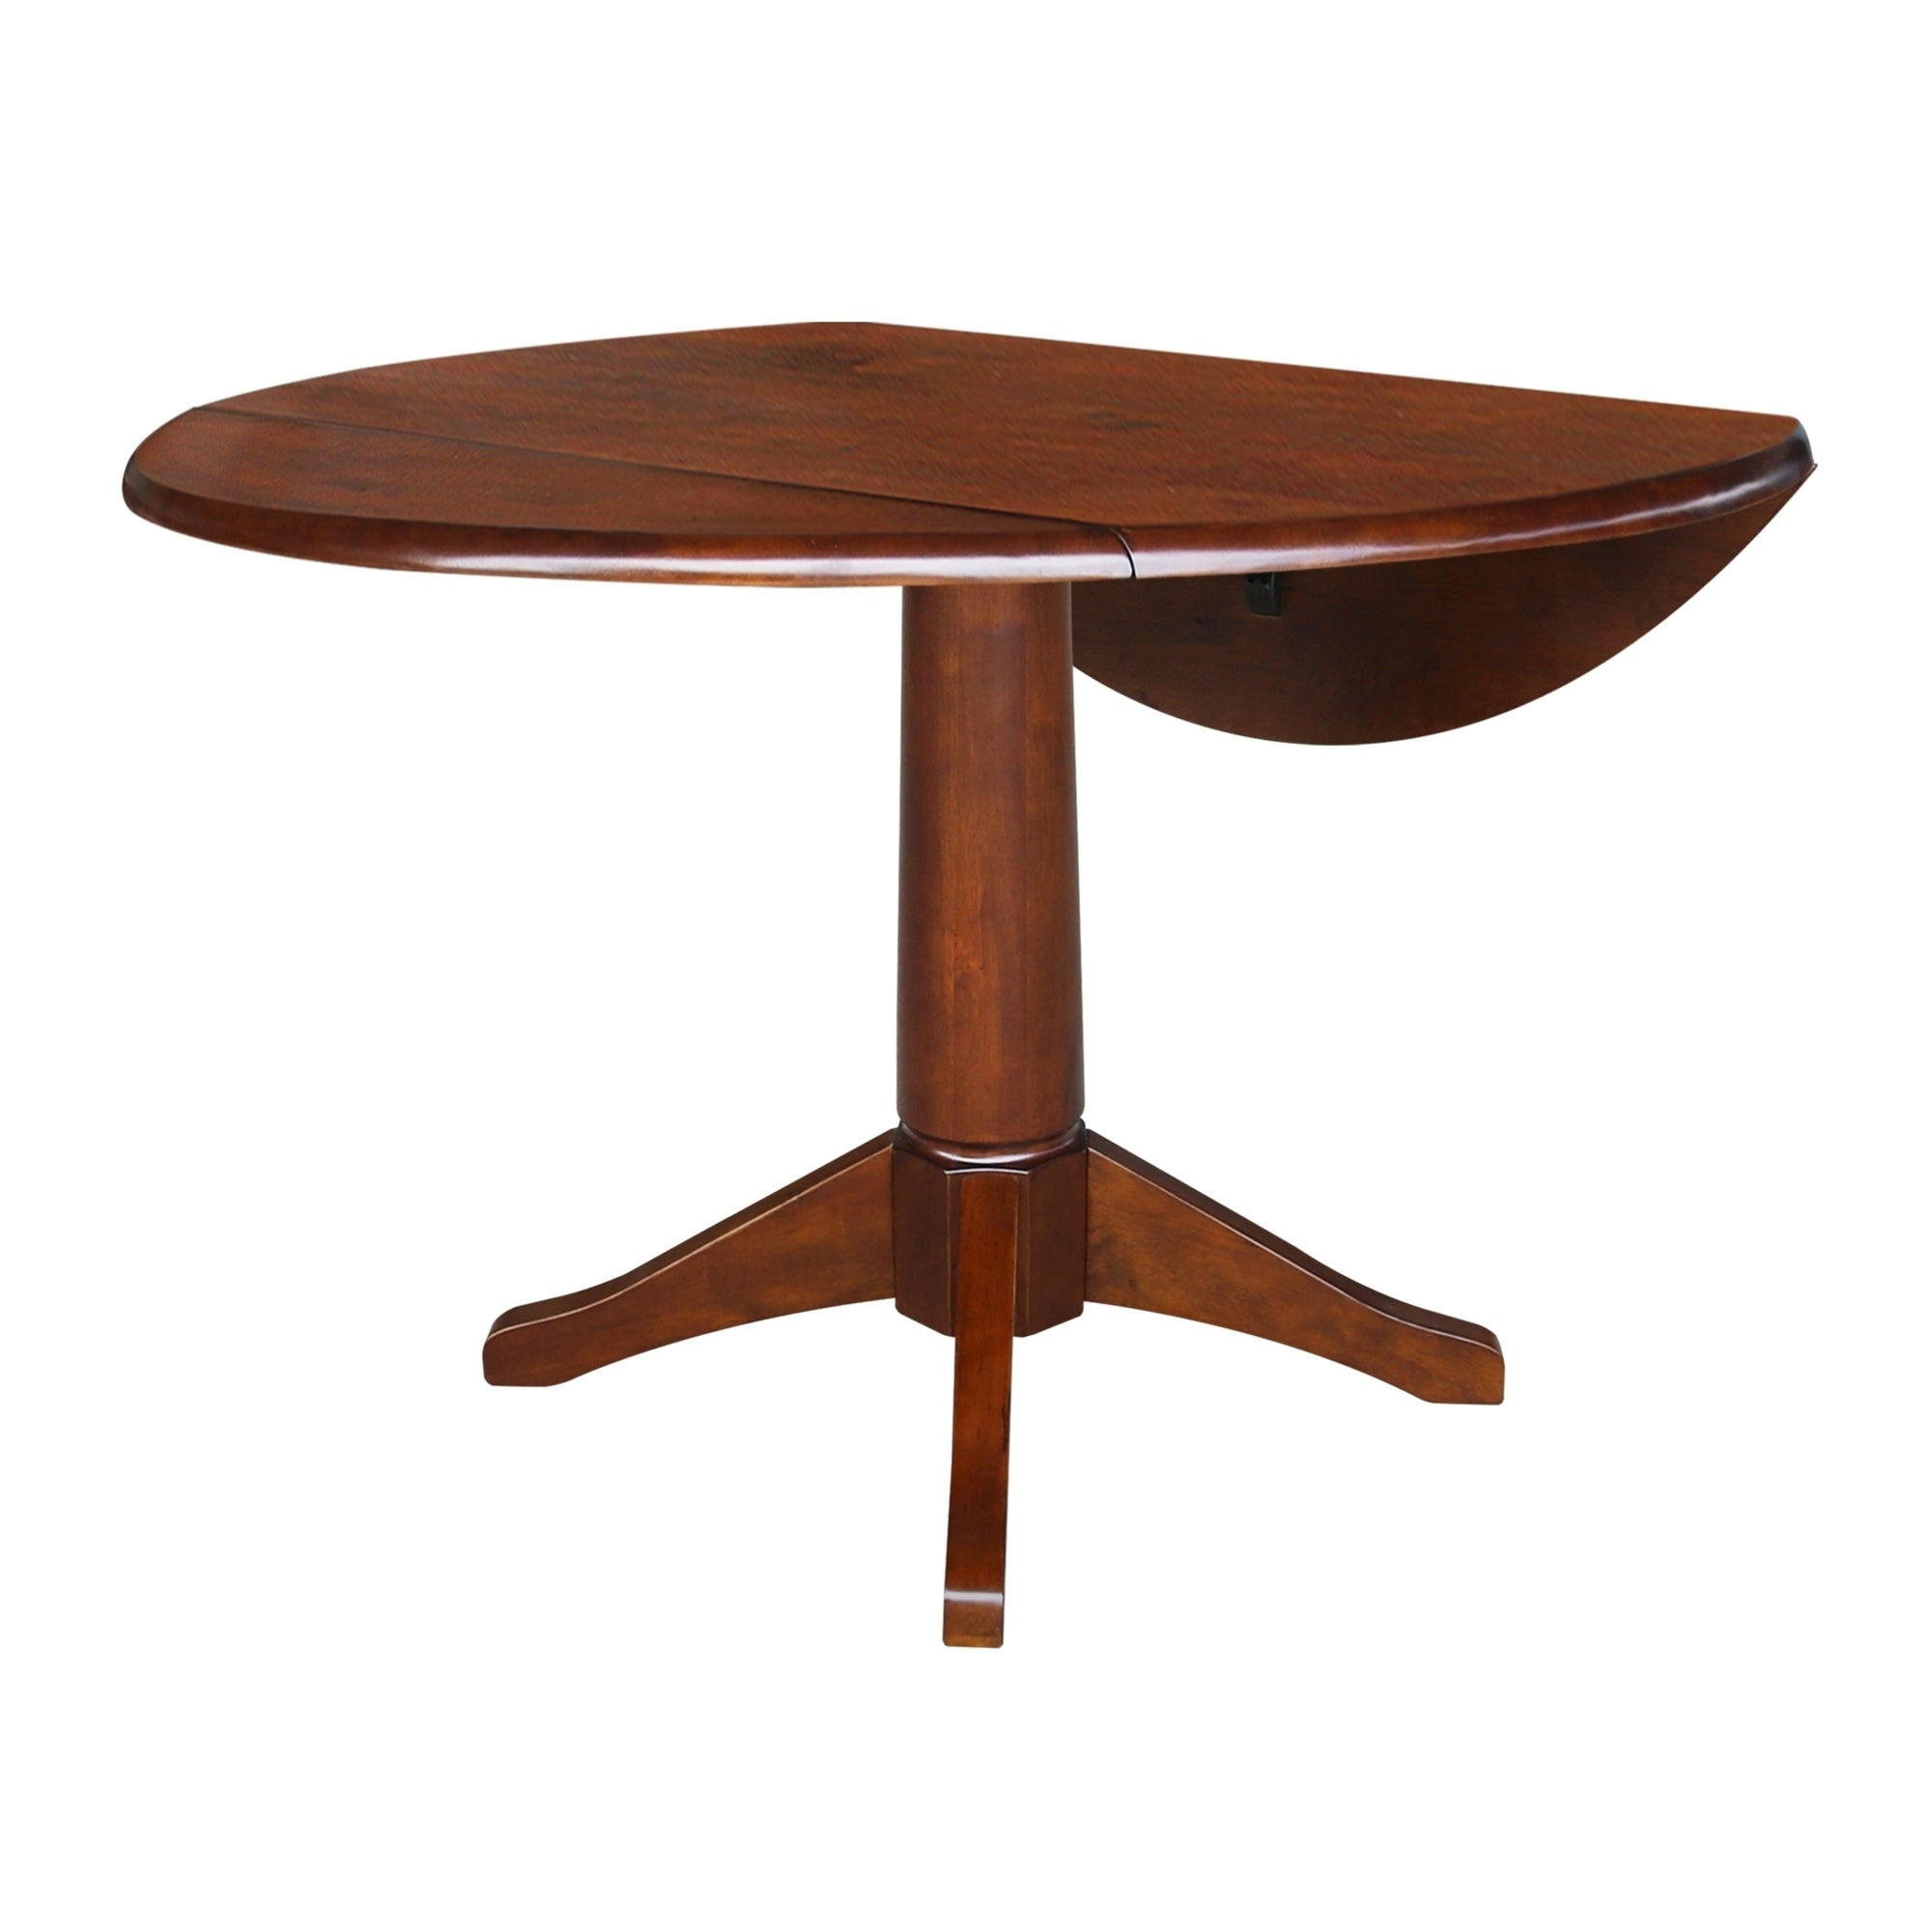 Most Current International Concepts Espresso Wood 42 Inch Round Dual Drop Leaf Table Intended For Alamo Transitional 4 Seating Double Drop Leaf Round Casual Dining Tables (View 17 of 26)